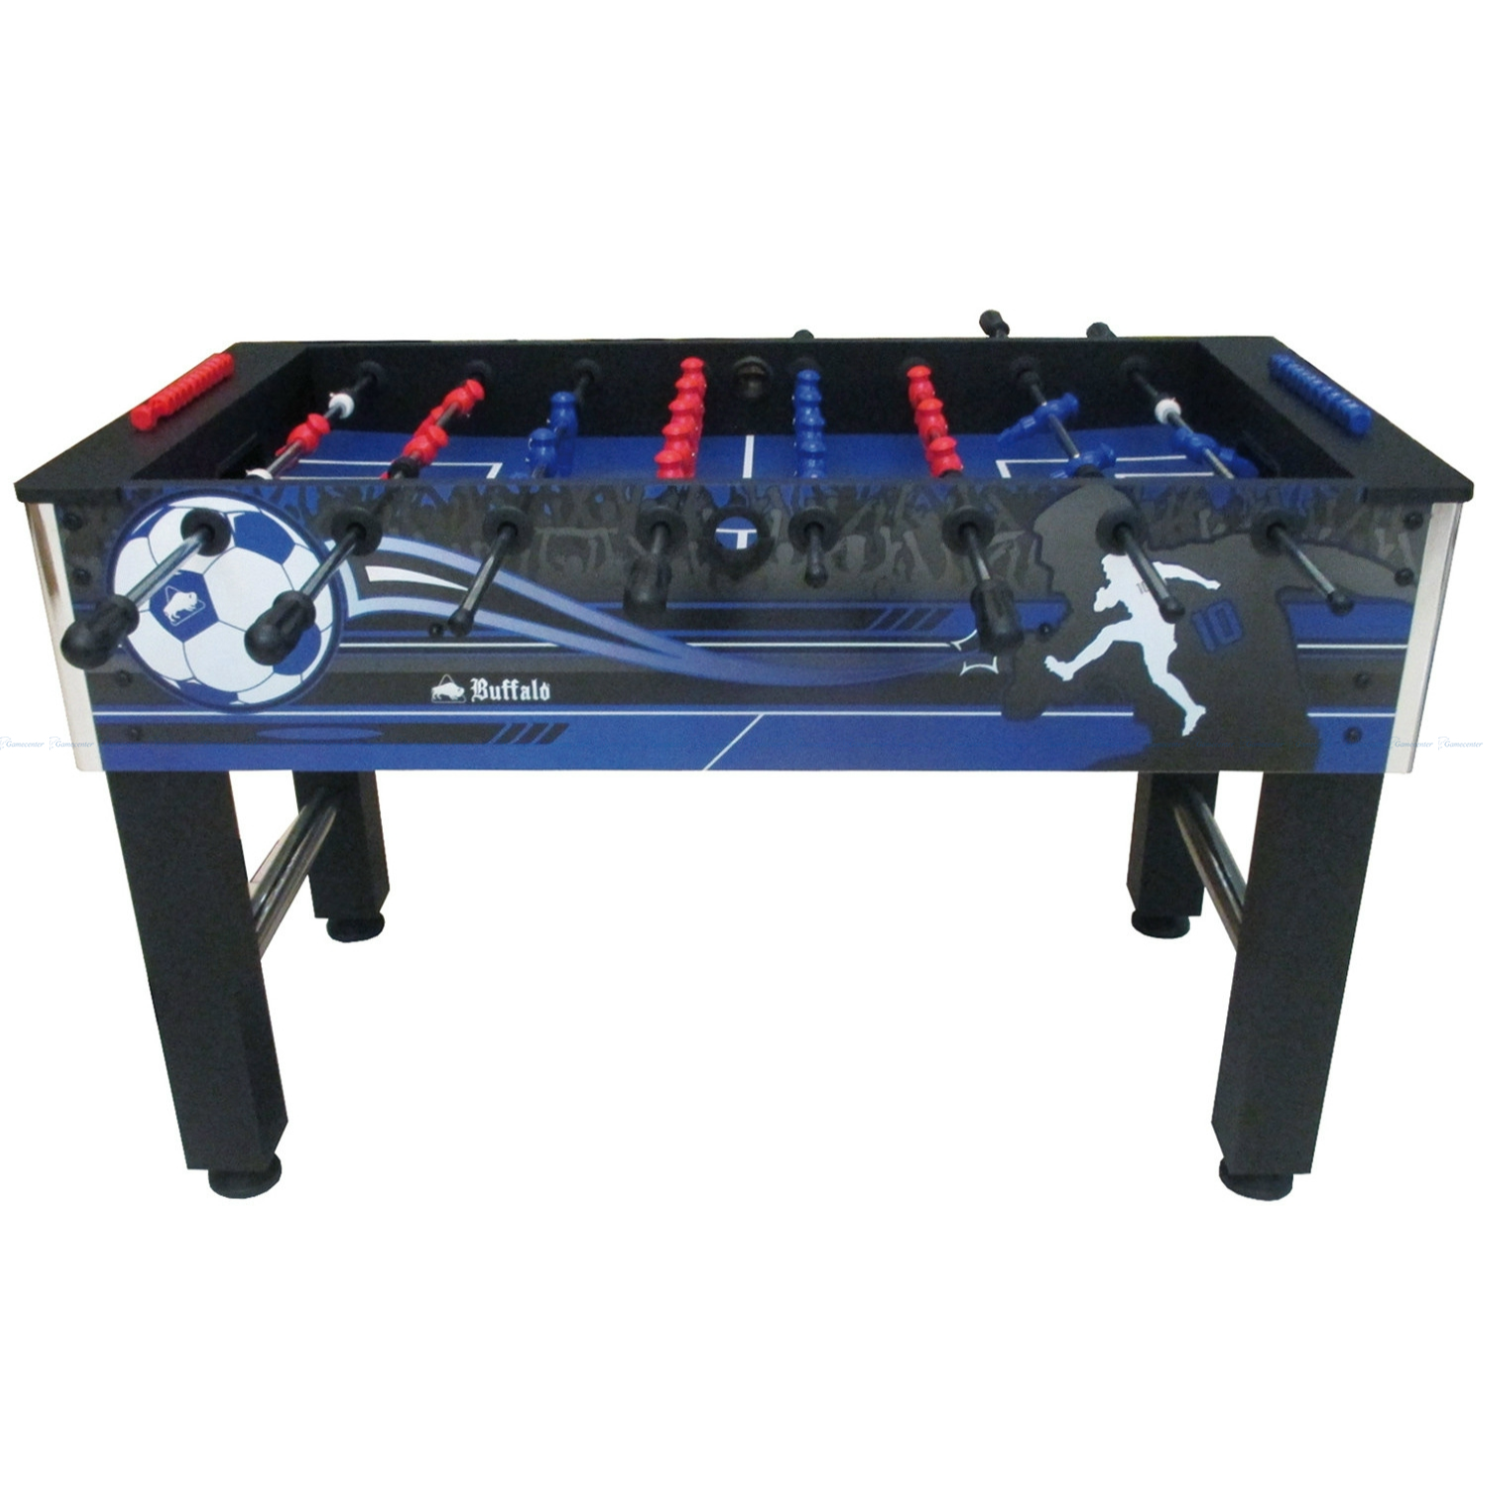 Blue Bandit II Football Table by Buffalo